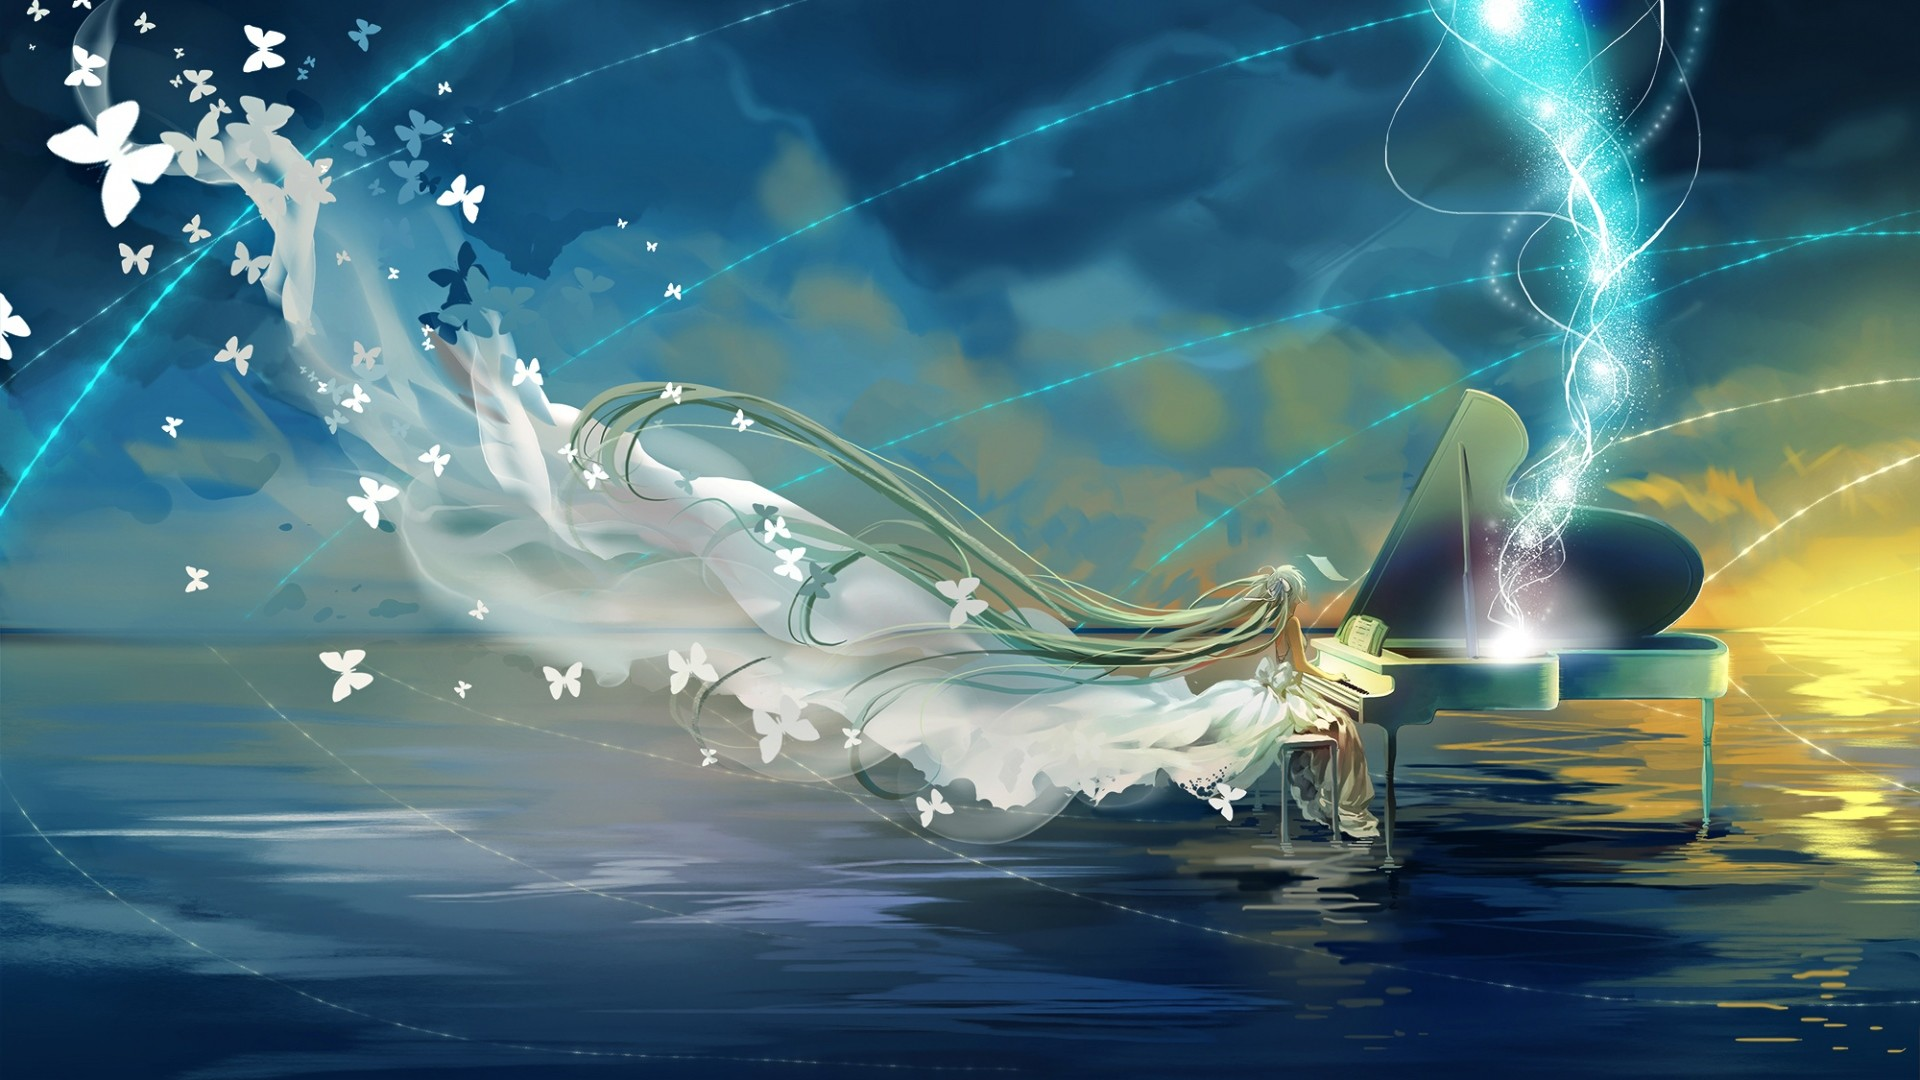 1920x1080 Anime Wallpaper  Aoki Hagane no Arpeggio, Kisara Tendo, Black  Bullet, sword | HD Anime Wallpapers | Pinterest | Anime wallpaper ,  ...